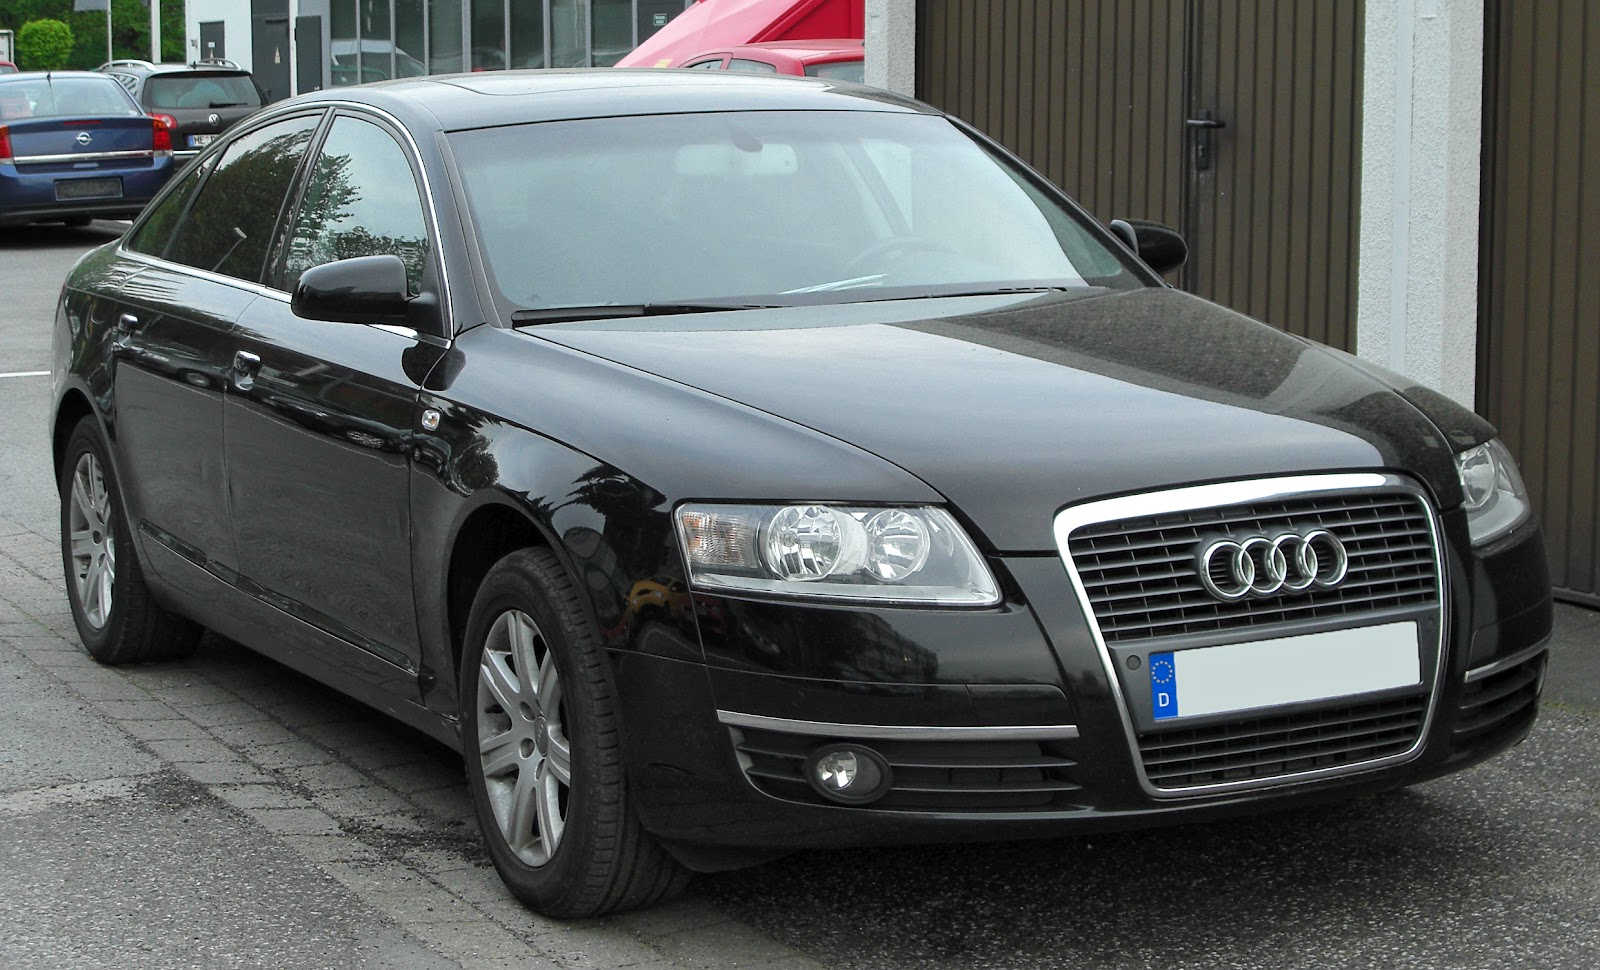 2012 audi a6 diesel 2 0 tdi preview. Black Bedroom Furniture Sets. Home Design Ideas